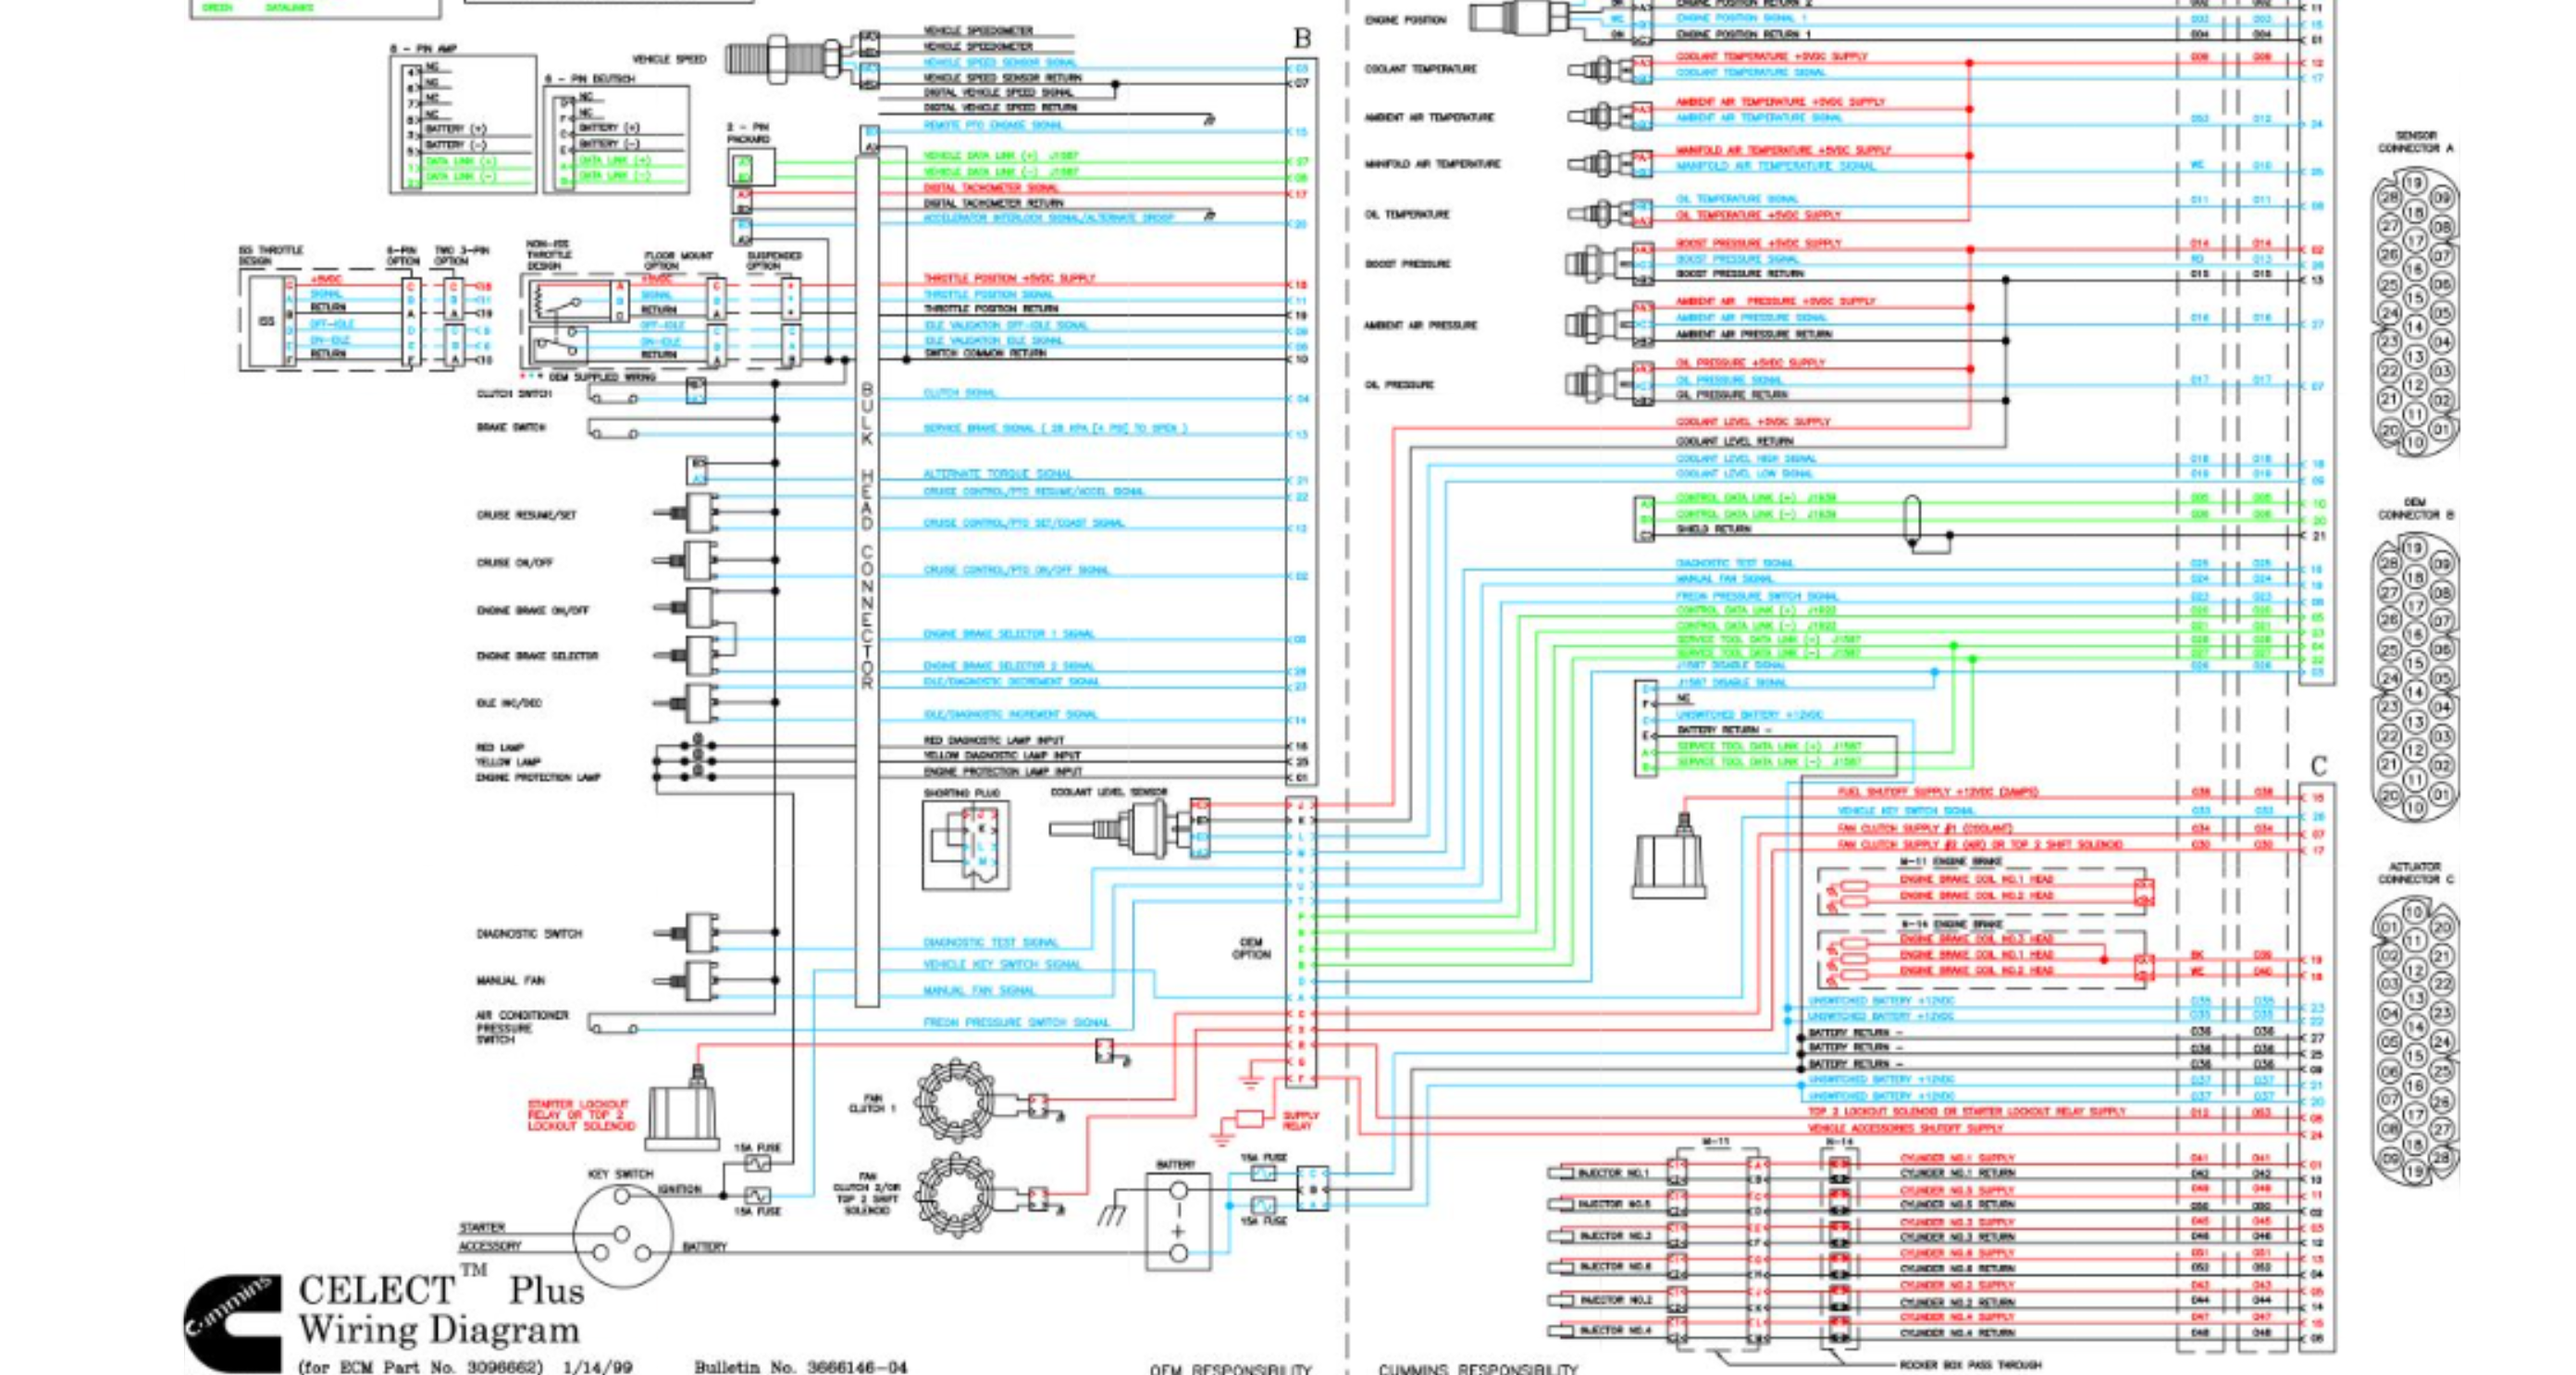 N14 Wiring Diagram - Wiring Diagrams on n14 oil diagram, n14 fuel system diagram, n14 ecm pinout diagram, cummins isx engine diagram, n14 cummins harness diagram,